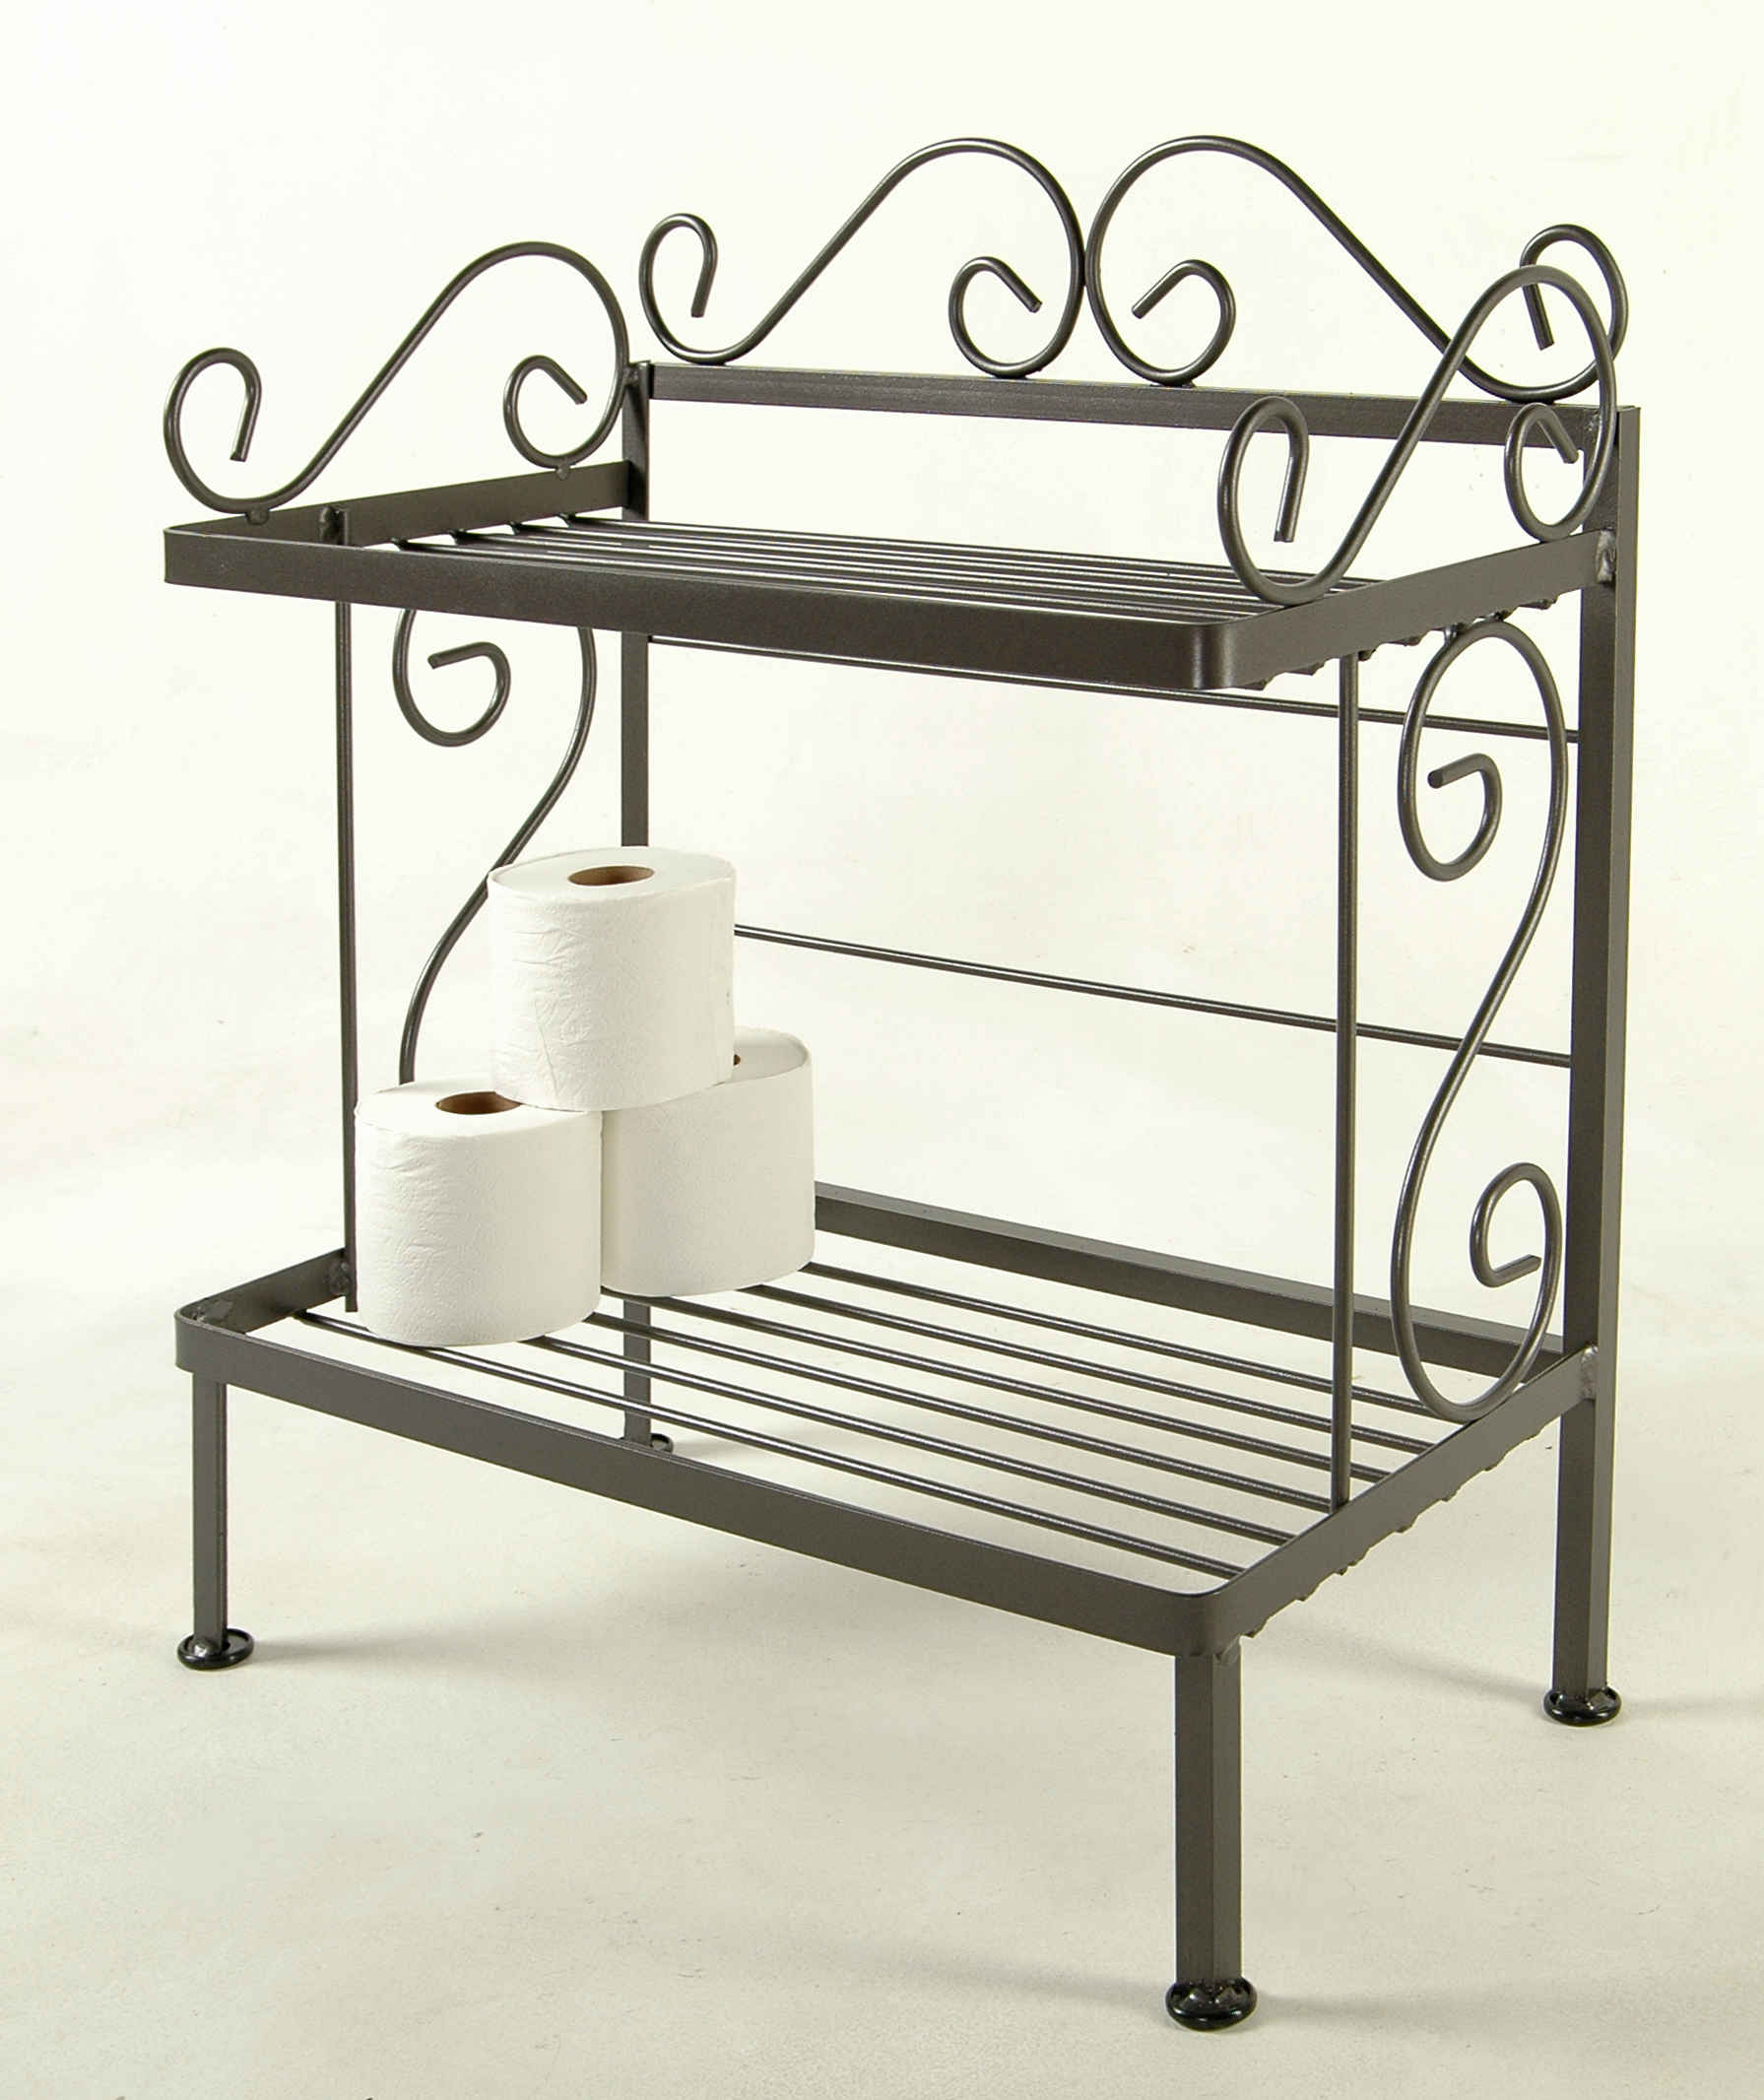 Grace Bathroom Storage Racks for towels and bath room tissue